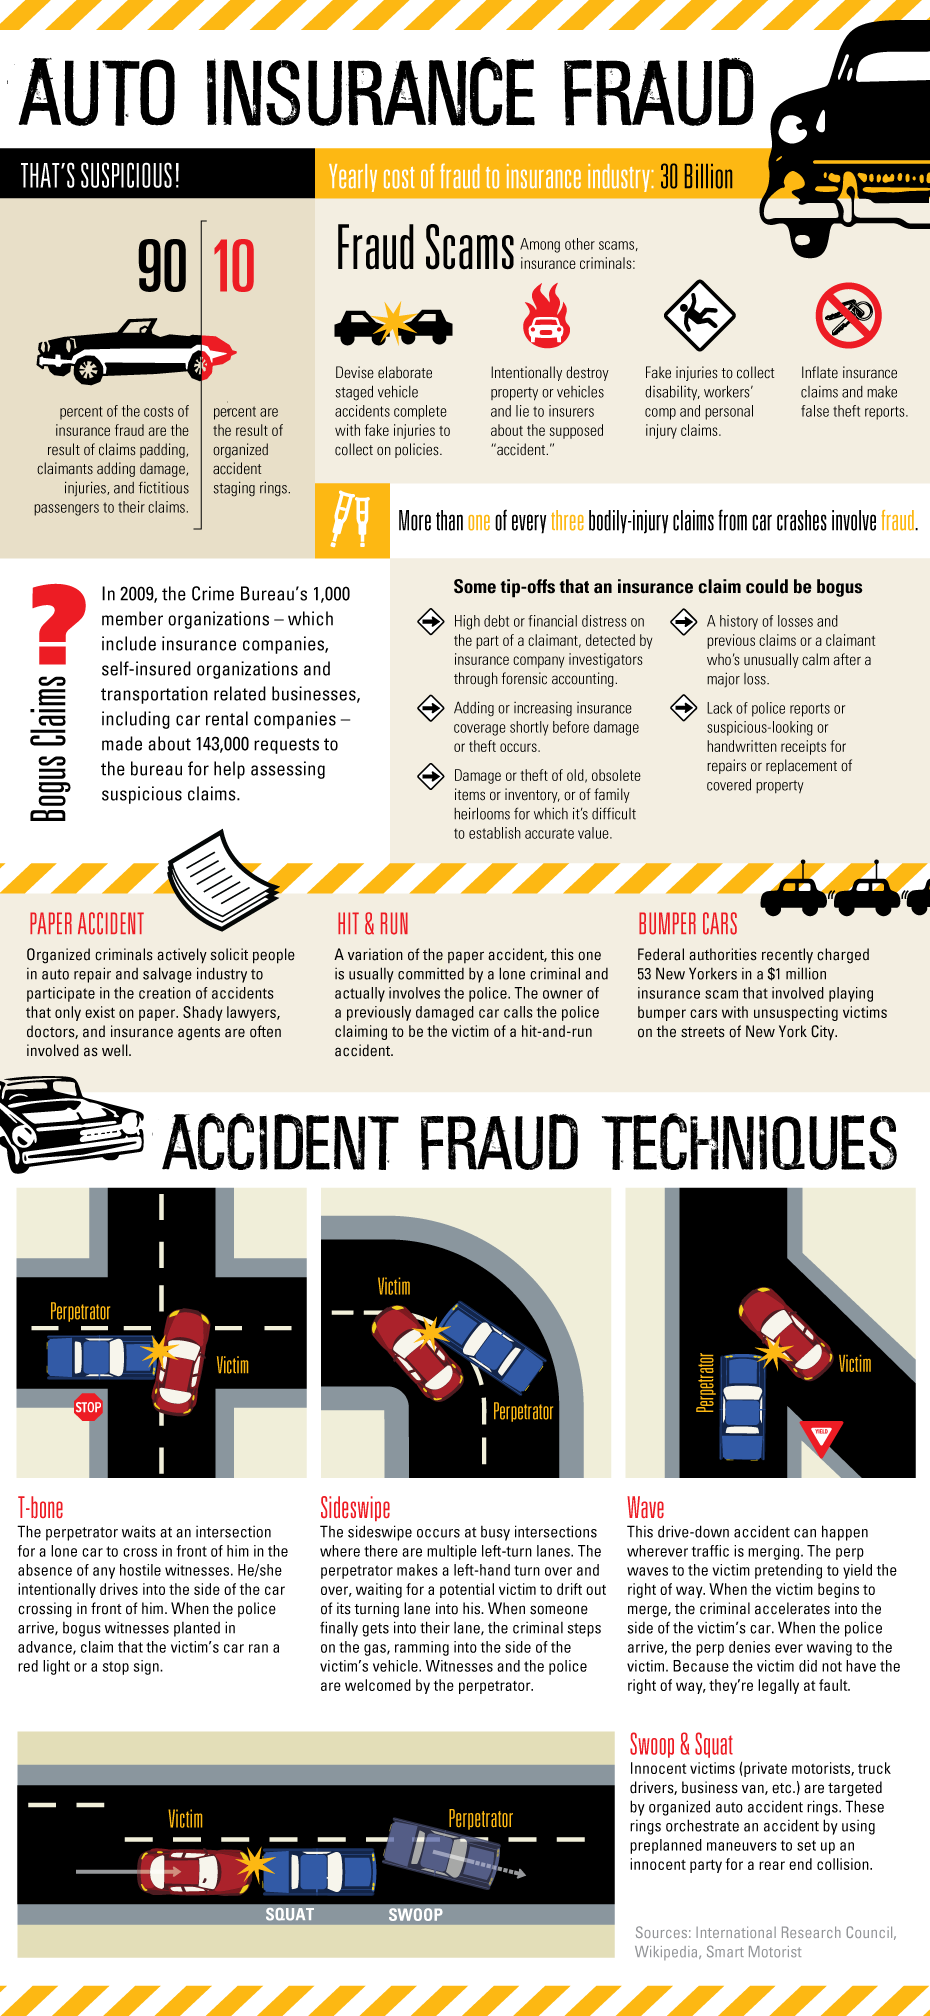 Auto Insurance Fraud Visual Ly Car Insurance Insurance Fraud